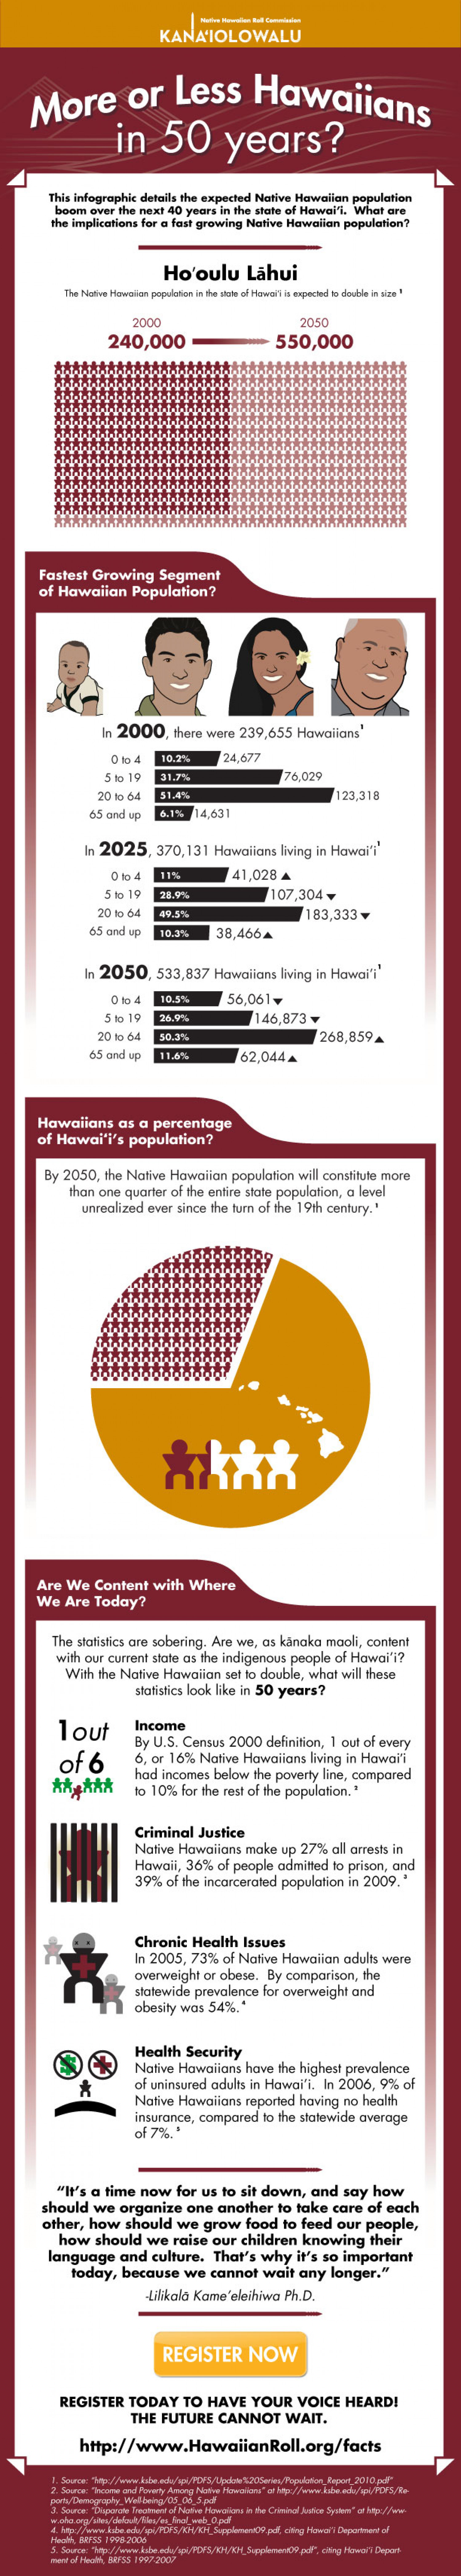 More or Less Hawaiians? Infographic